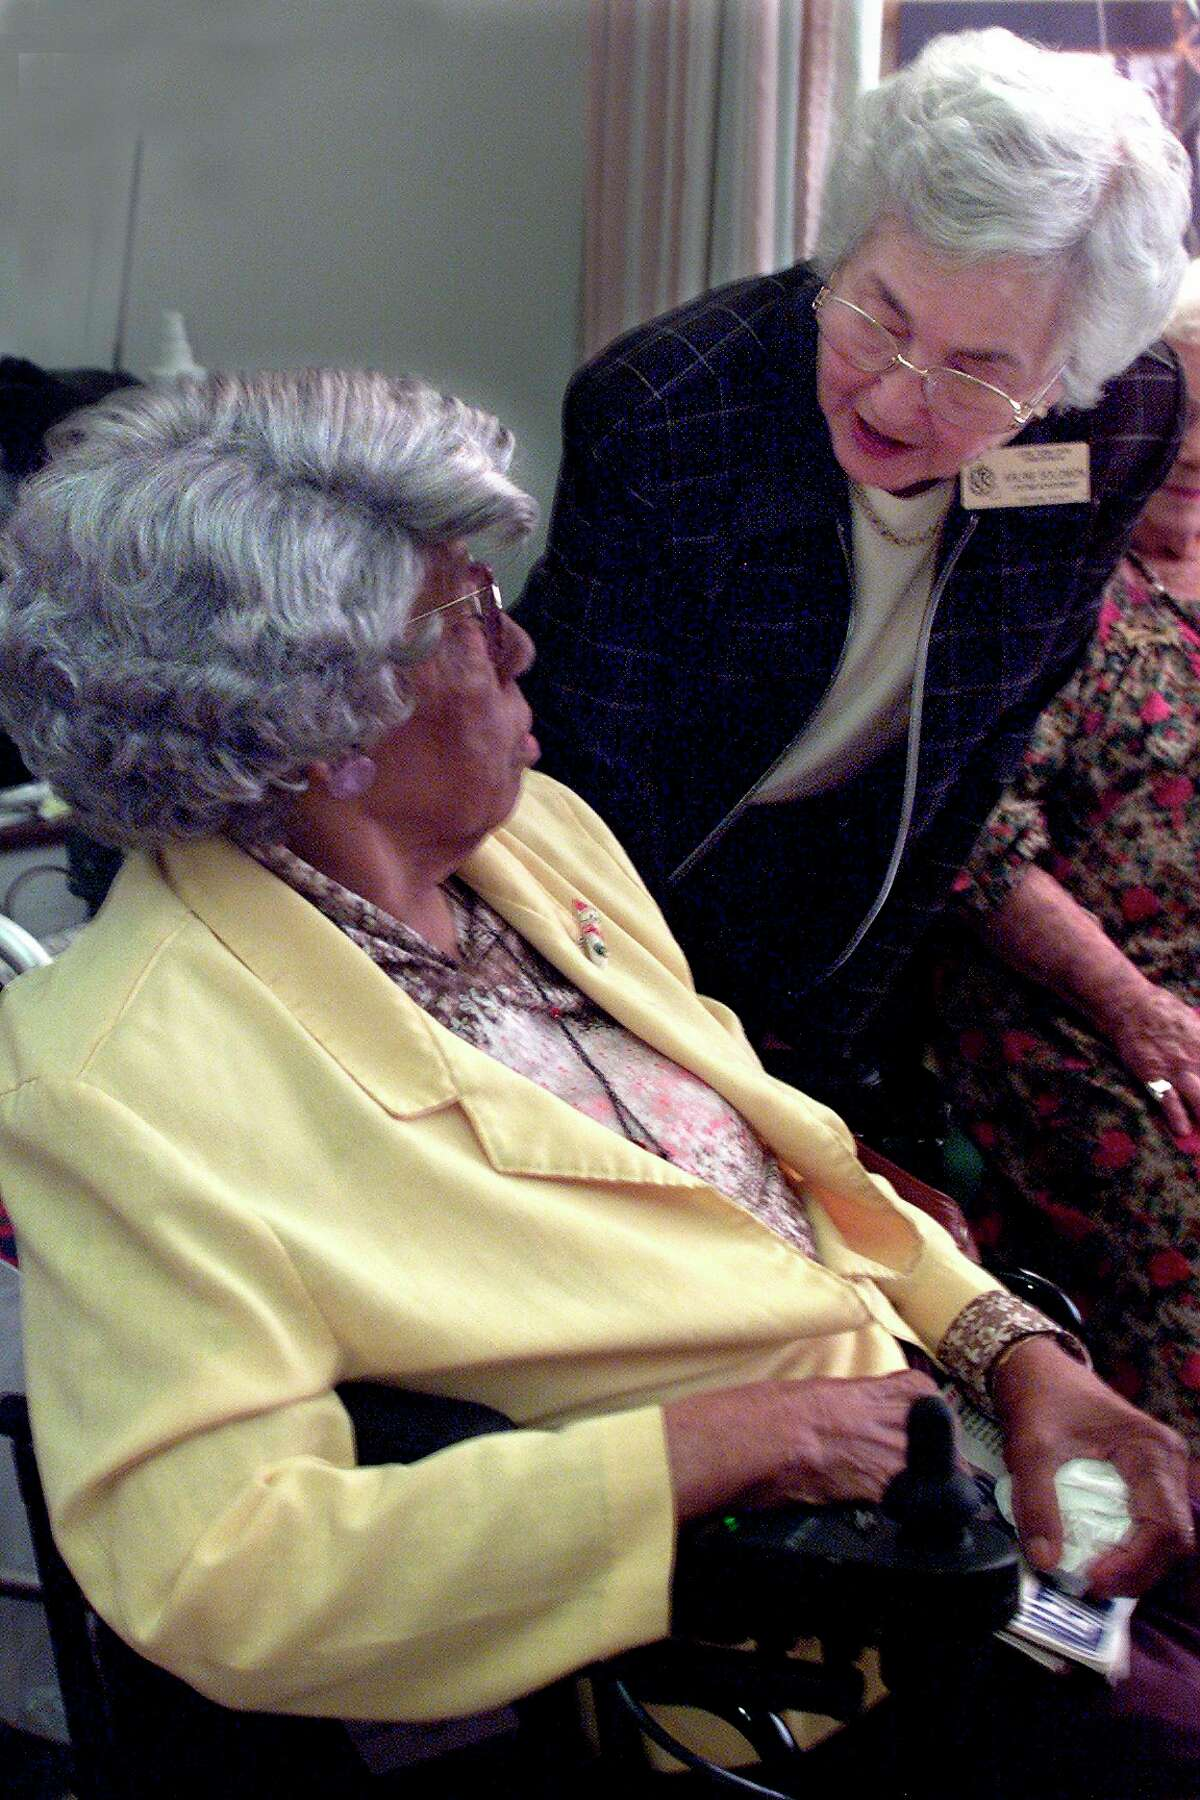 Arline Solomon, right, whovolunteers witha Long Term Care Ombudsman Program, speaks with a resident of a long-term care facility in Oxnard,California.The Long Term Care Ombudsman Program got its start in 1972. Today,there is an ombudsman program operating in every state across the U.S. (Photo by Anne Cusack/Los Angeles Times via Getty Images)